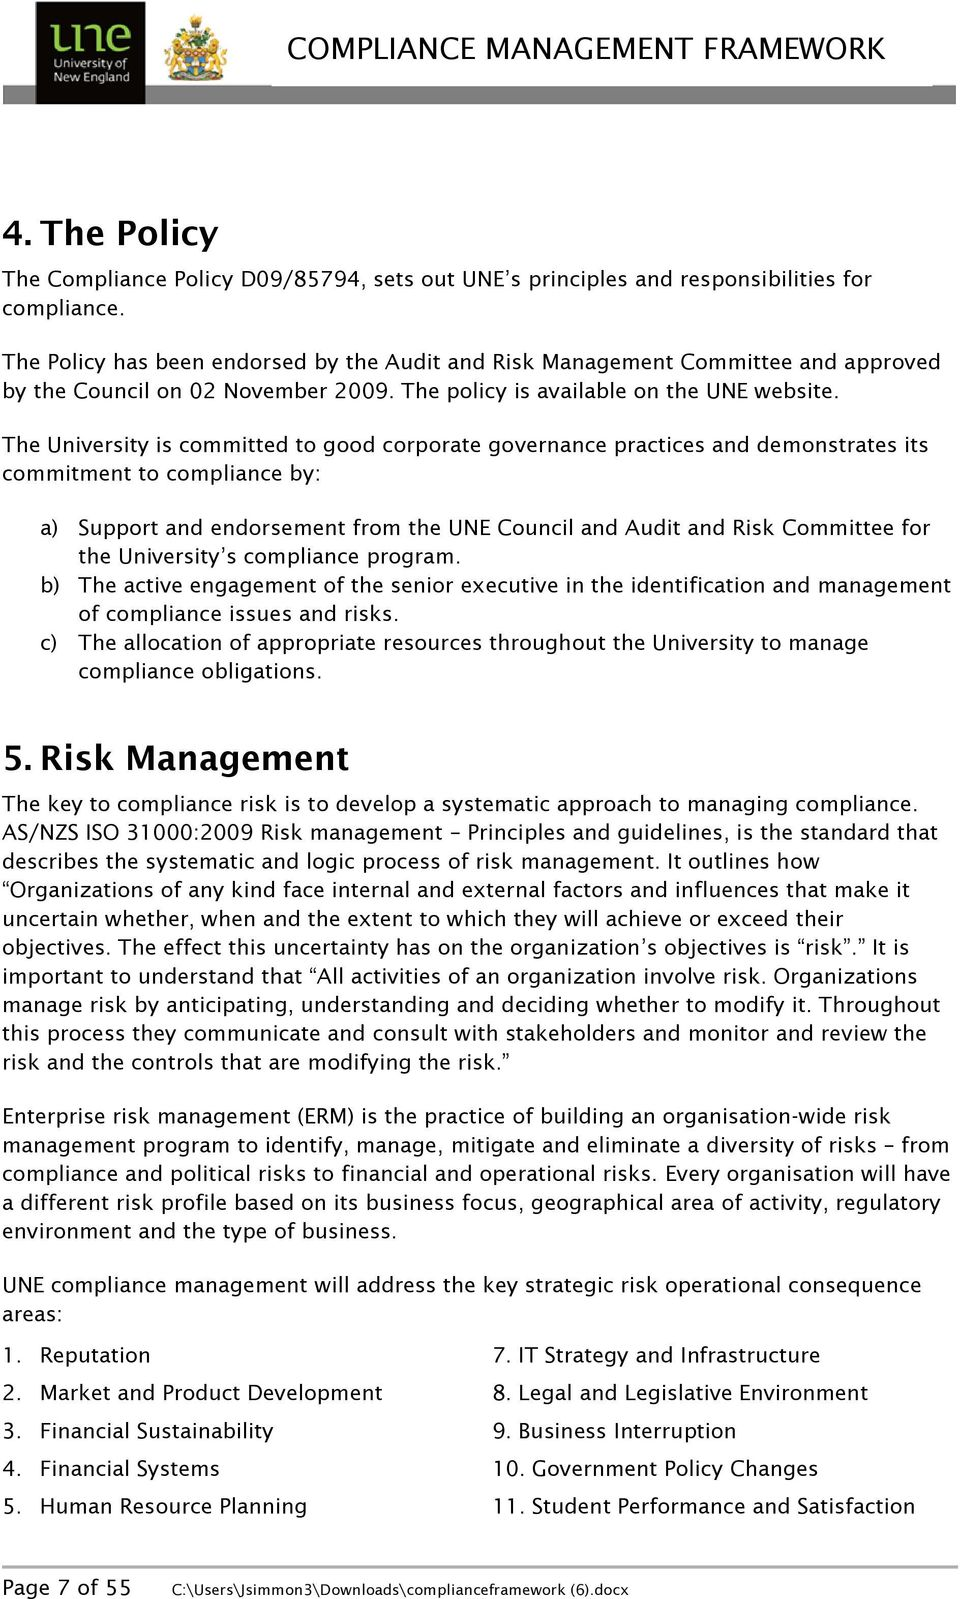 The University is committed to good corporate governance practices and demonstrates its commitment to compliance by: a) Support and endorsement from the UNE Council and Audit and Risk Committee for